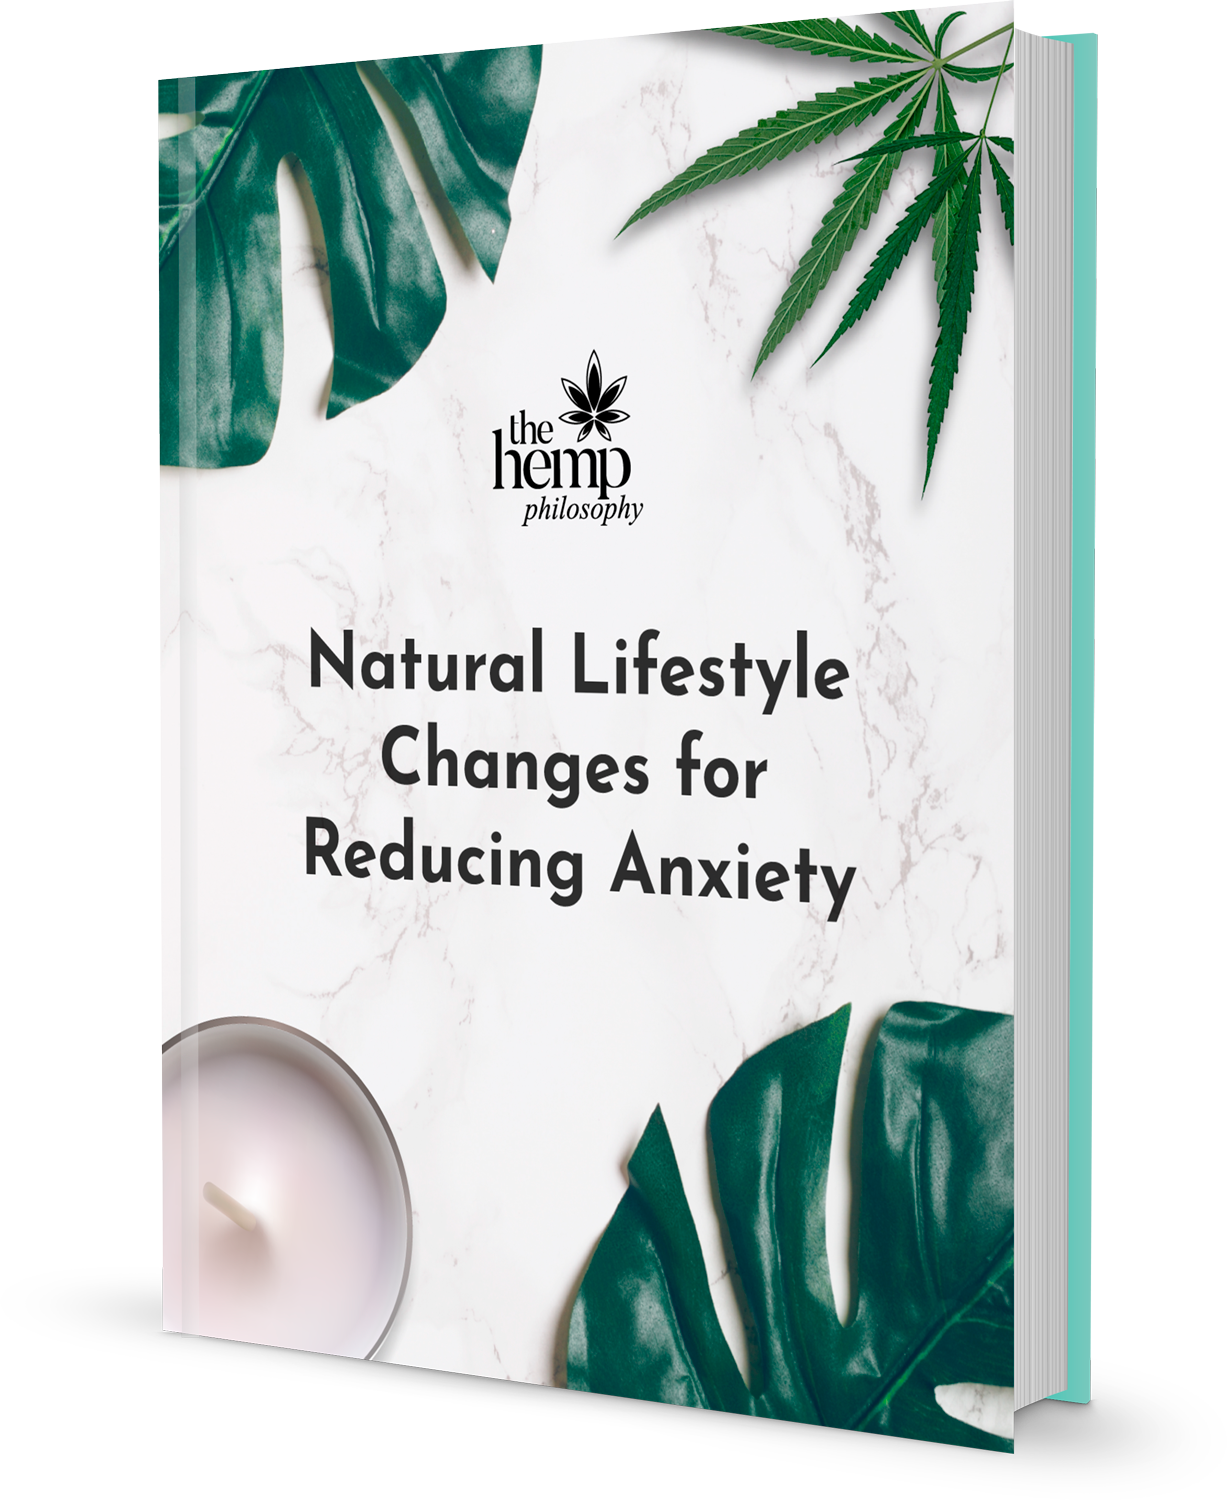 Natural lifestyle changes for reducing anxiety